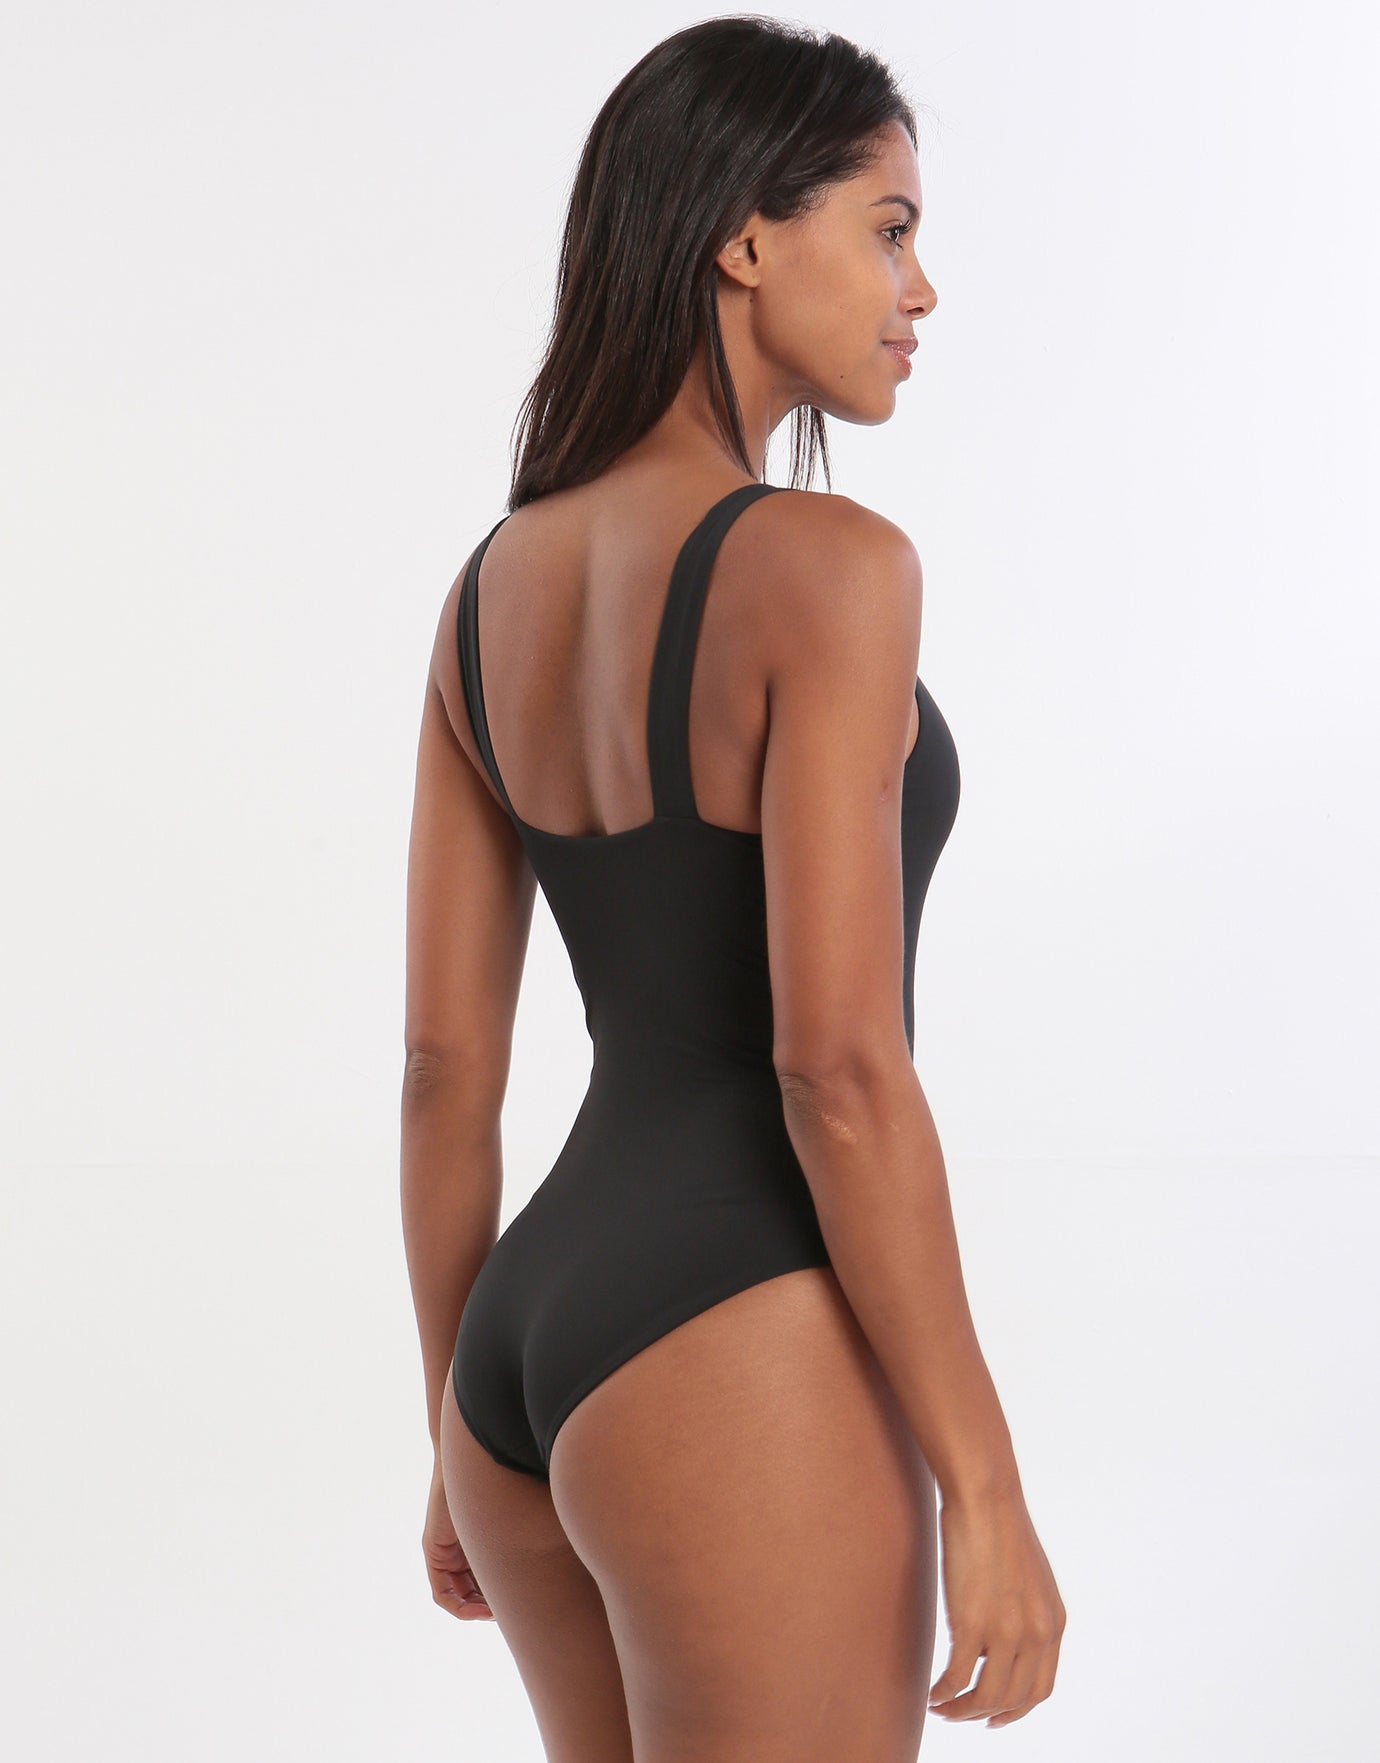 Jo Severin Elin High Neck Swimsuit - Black